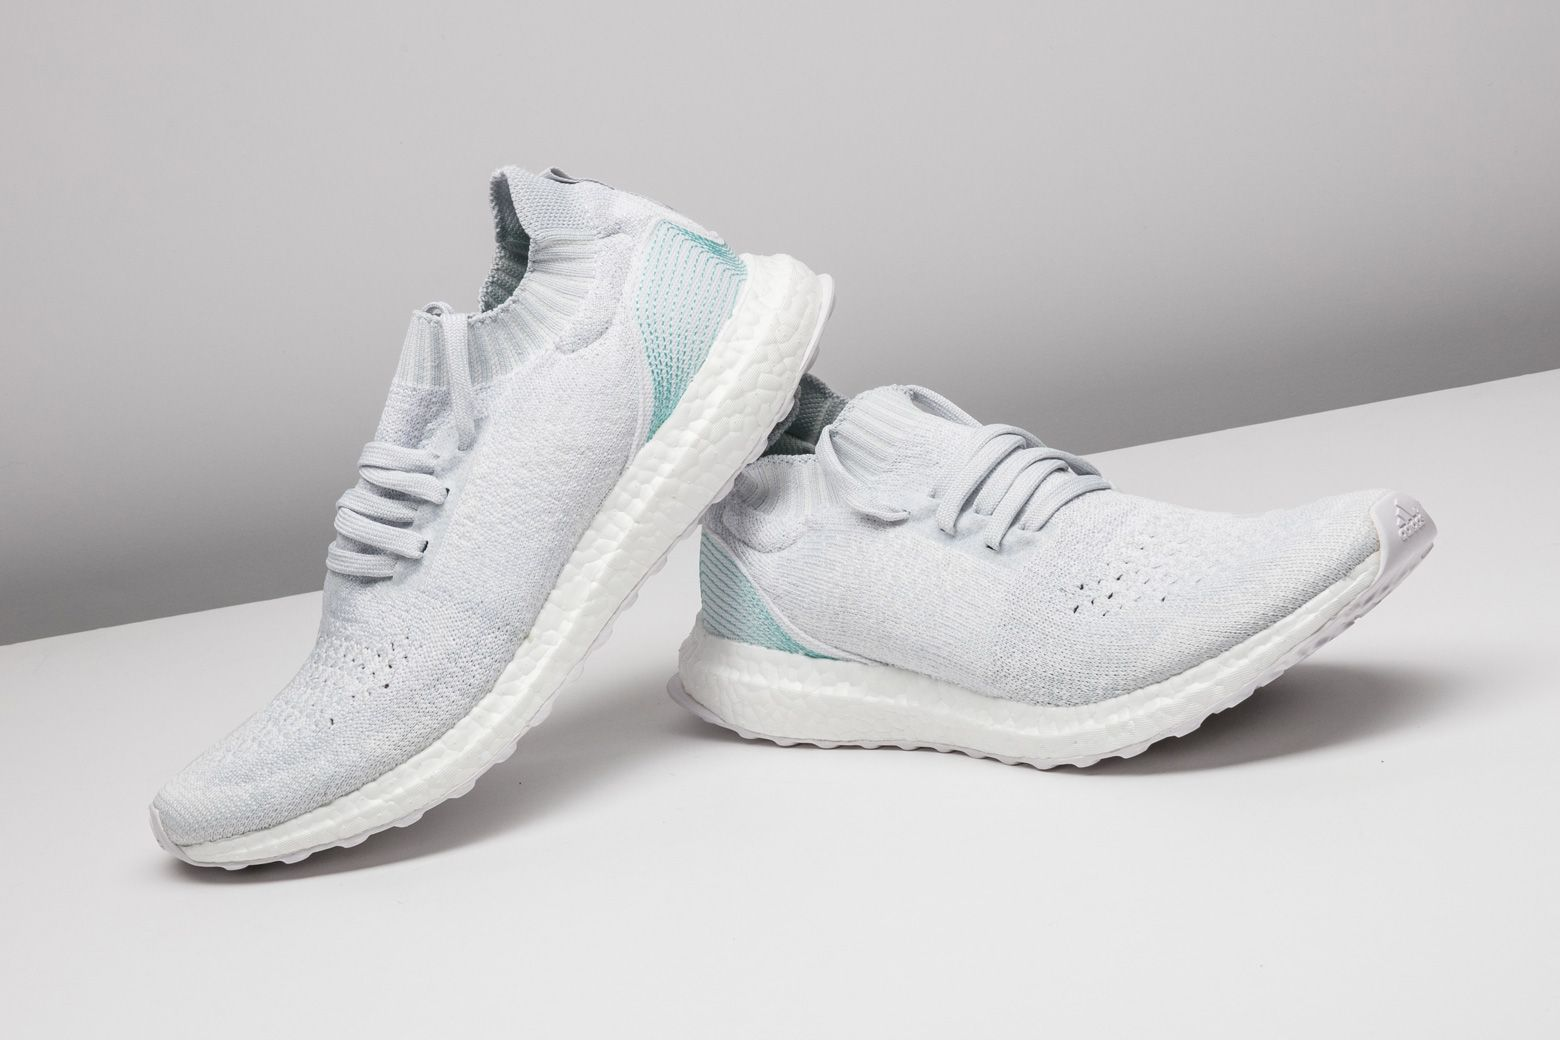 79f5fe51c The environmentally friendly Parley x adidas Ultra Boost Uncaged maintains  the shoe s best details. http